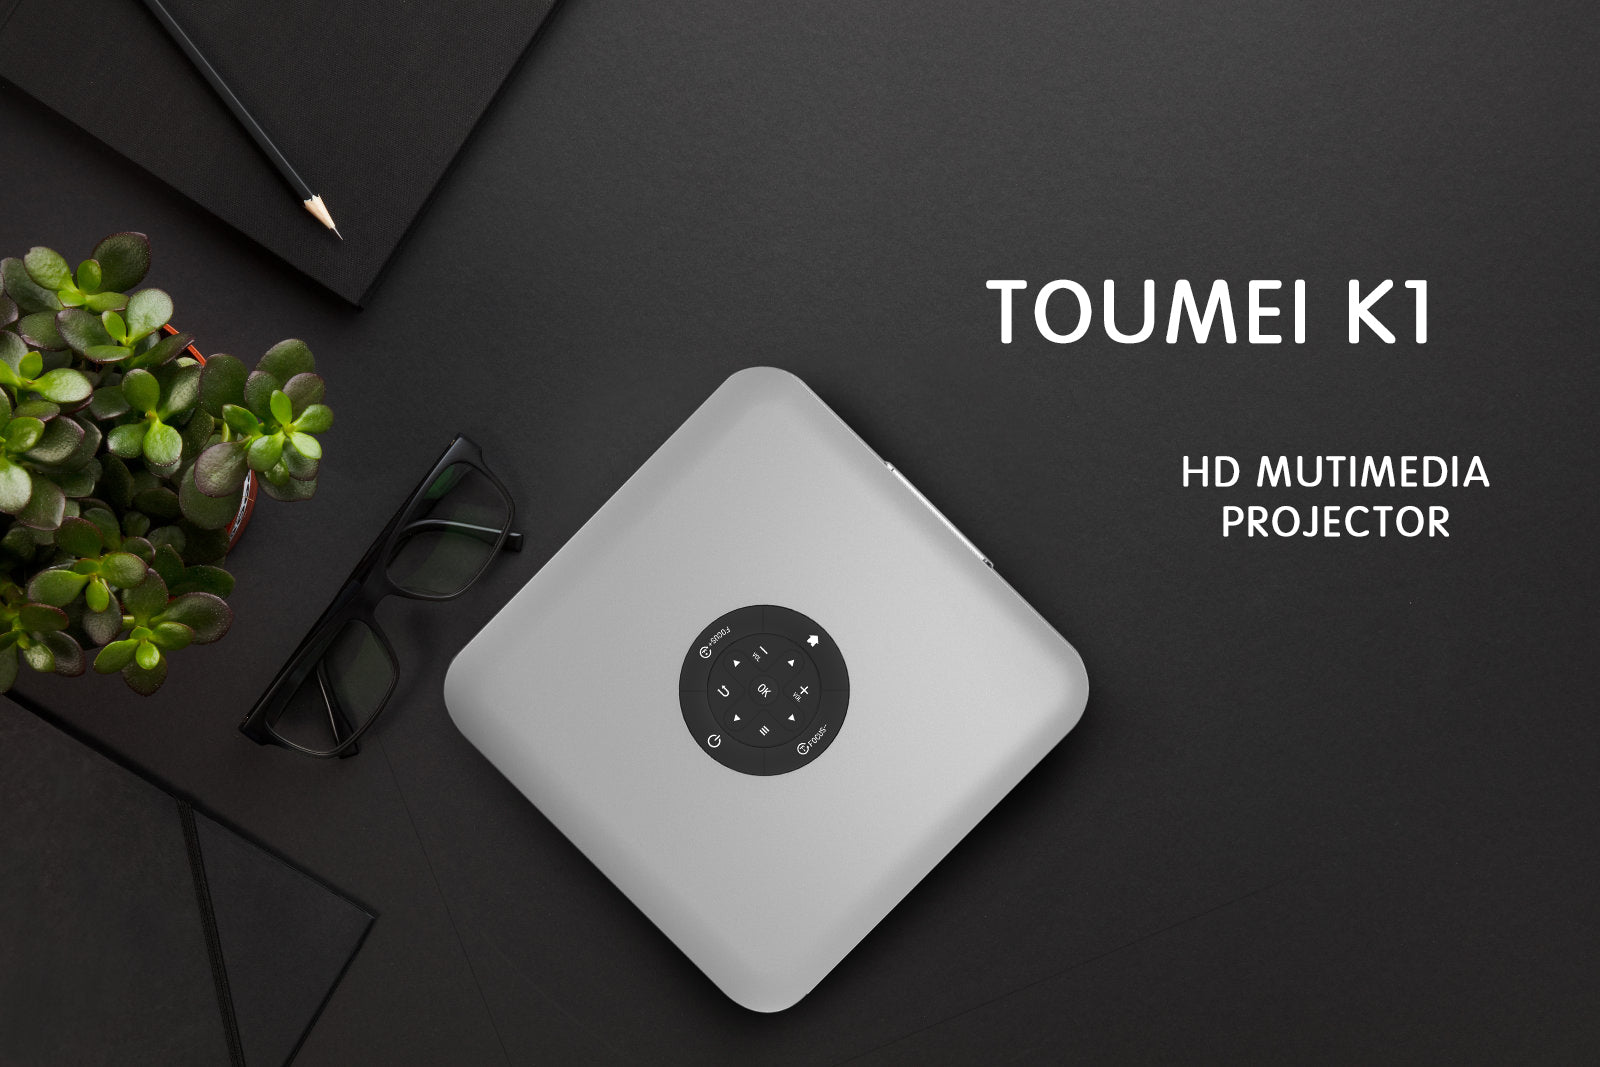 Toumei K1 Smart HD Projector Features 01